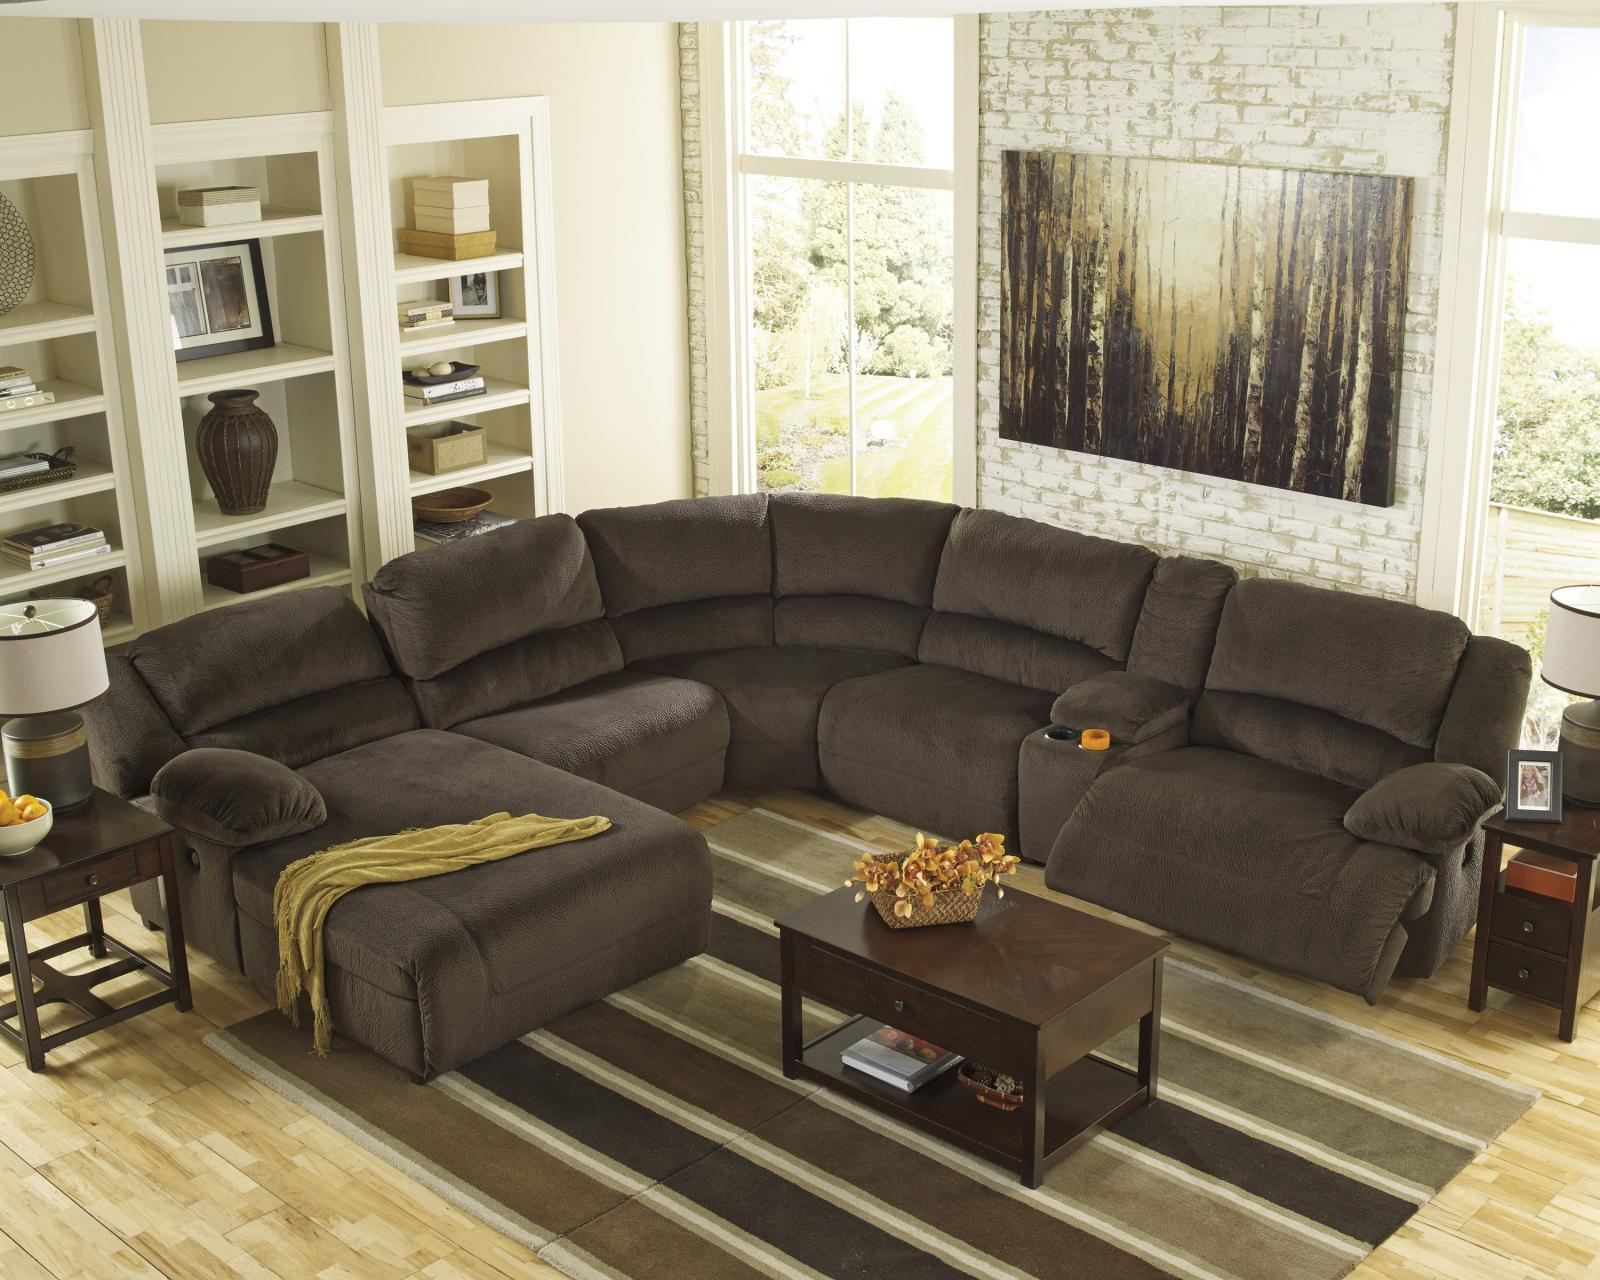 Ashley Toletta 6 Piece Living Room Sectional in Chocolate with Power Left Facing